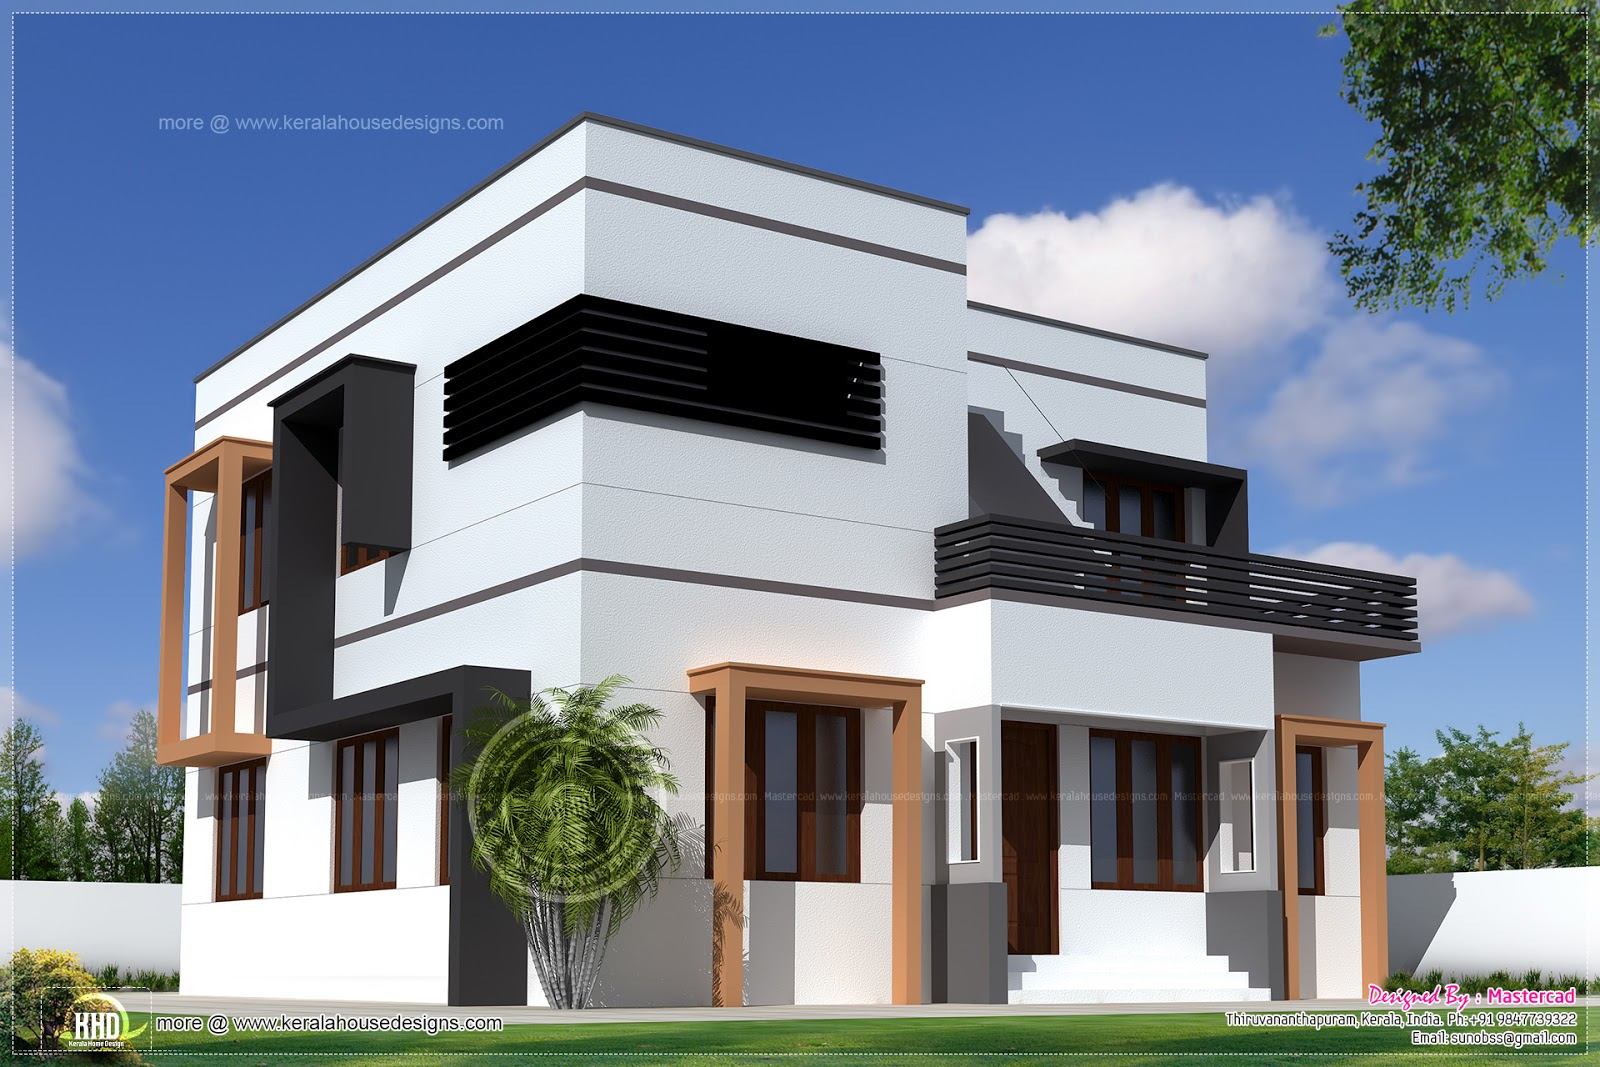 1627 square feet modern villa exterior house design plans for Modern square house